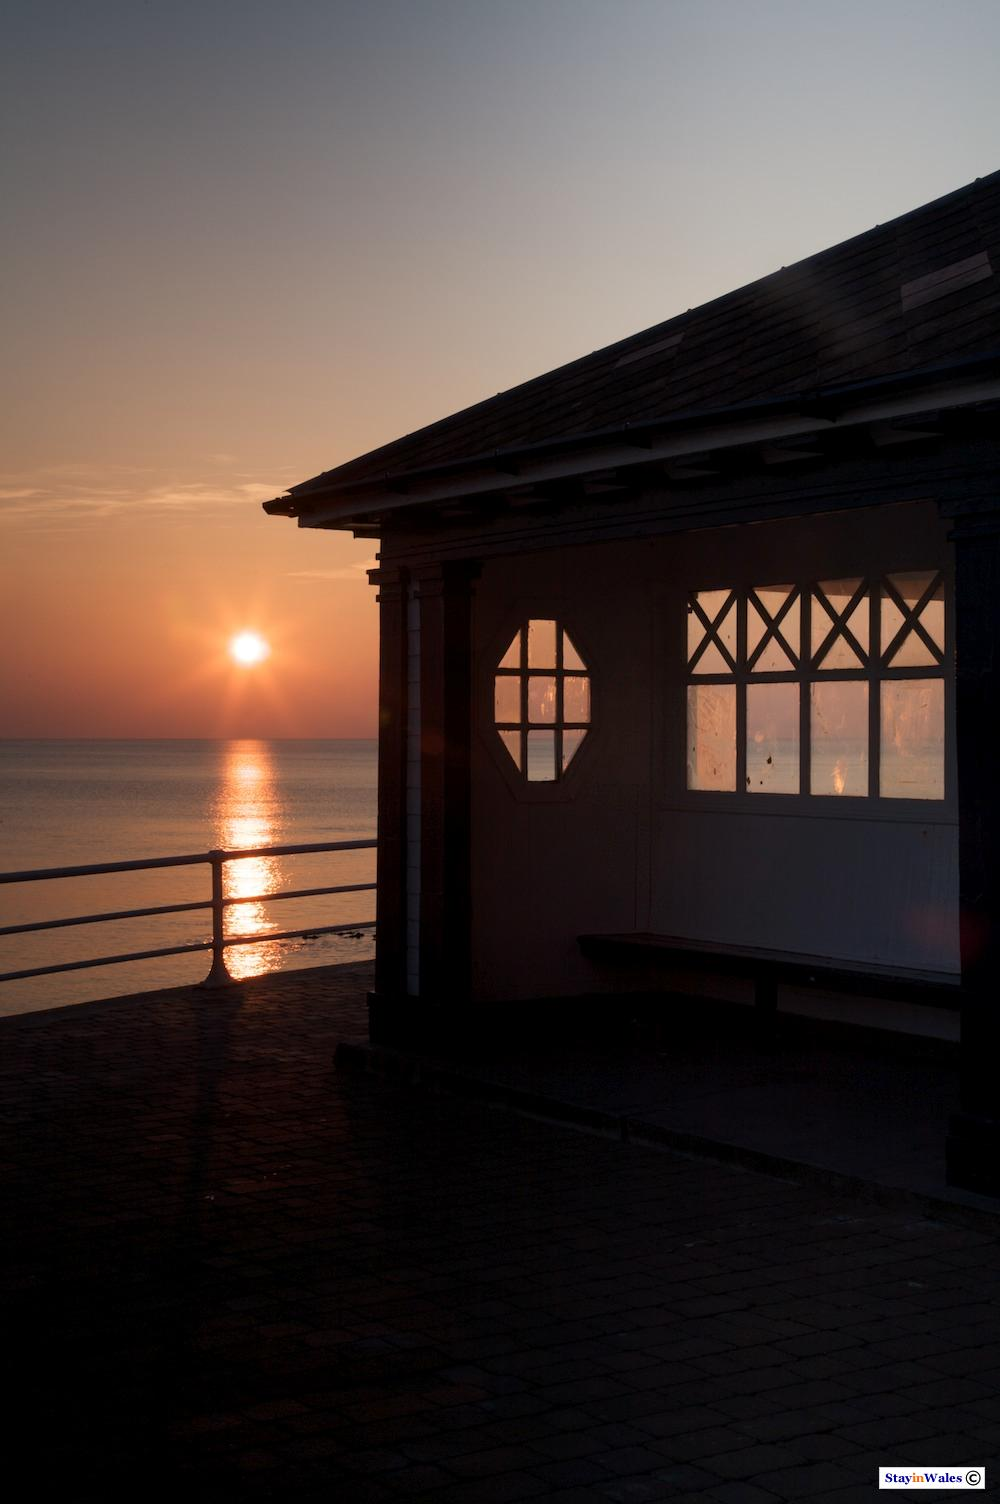 Seafront Shelter at Sunset